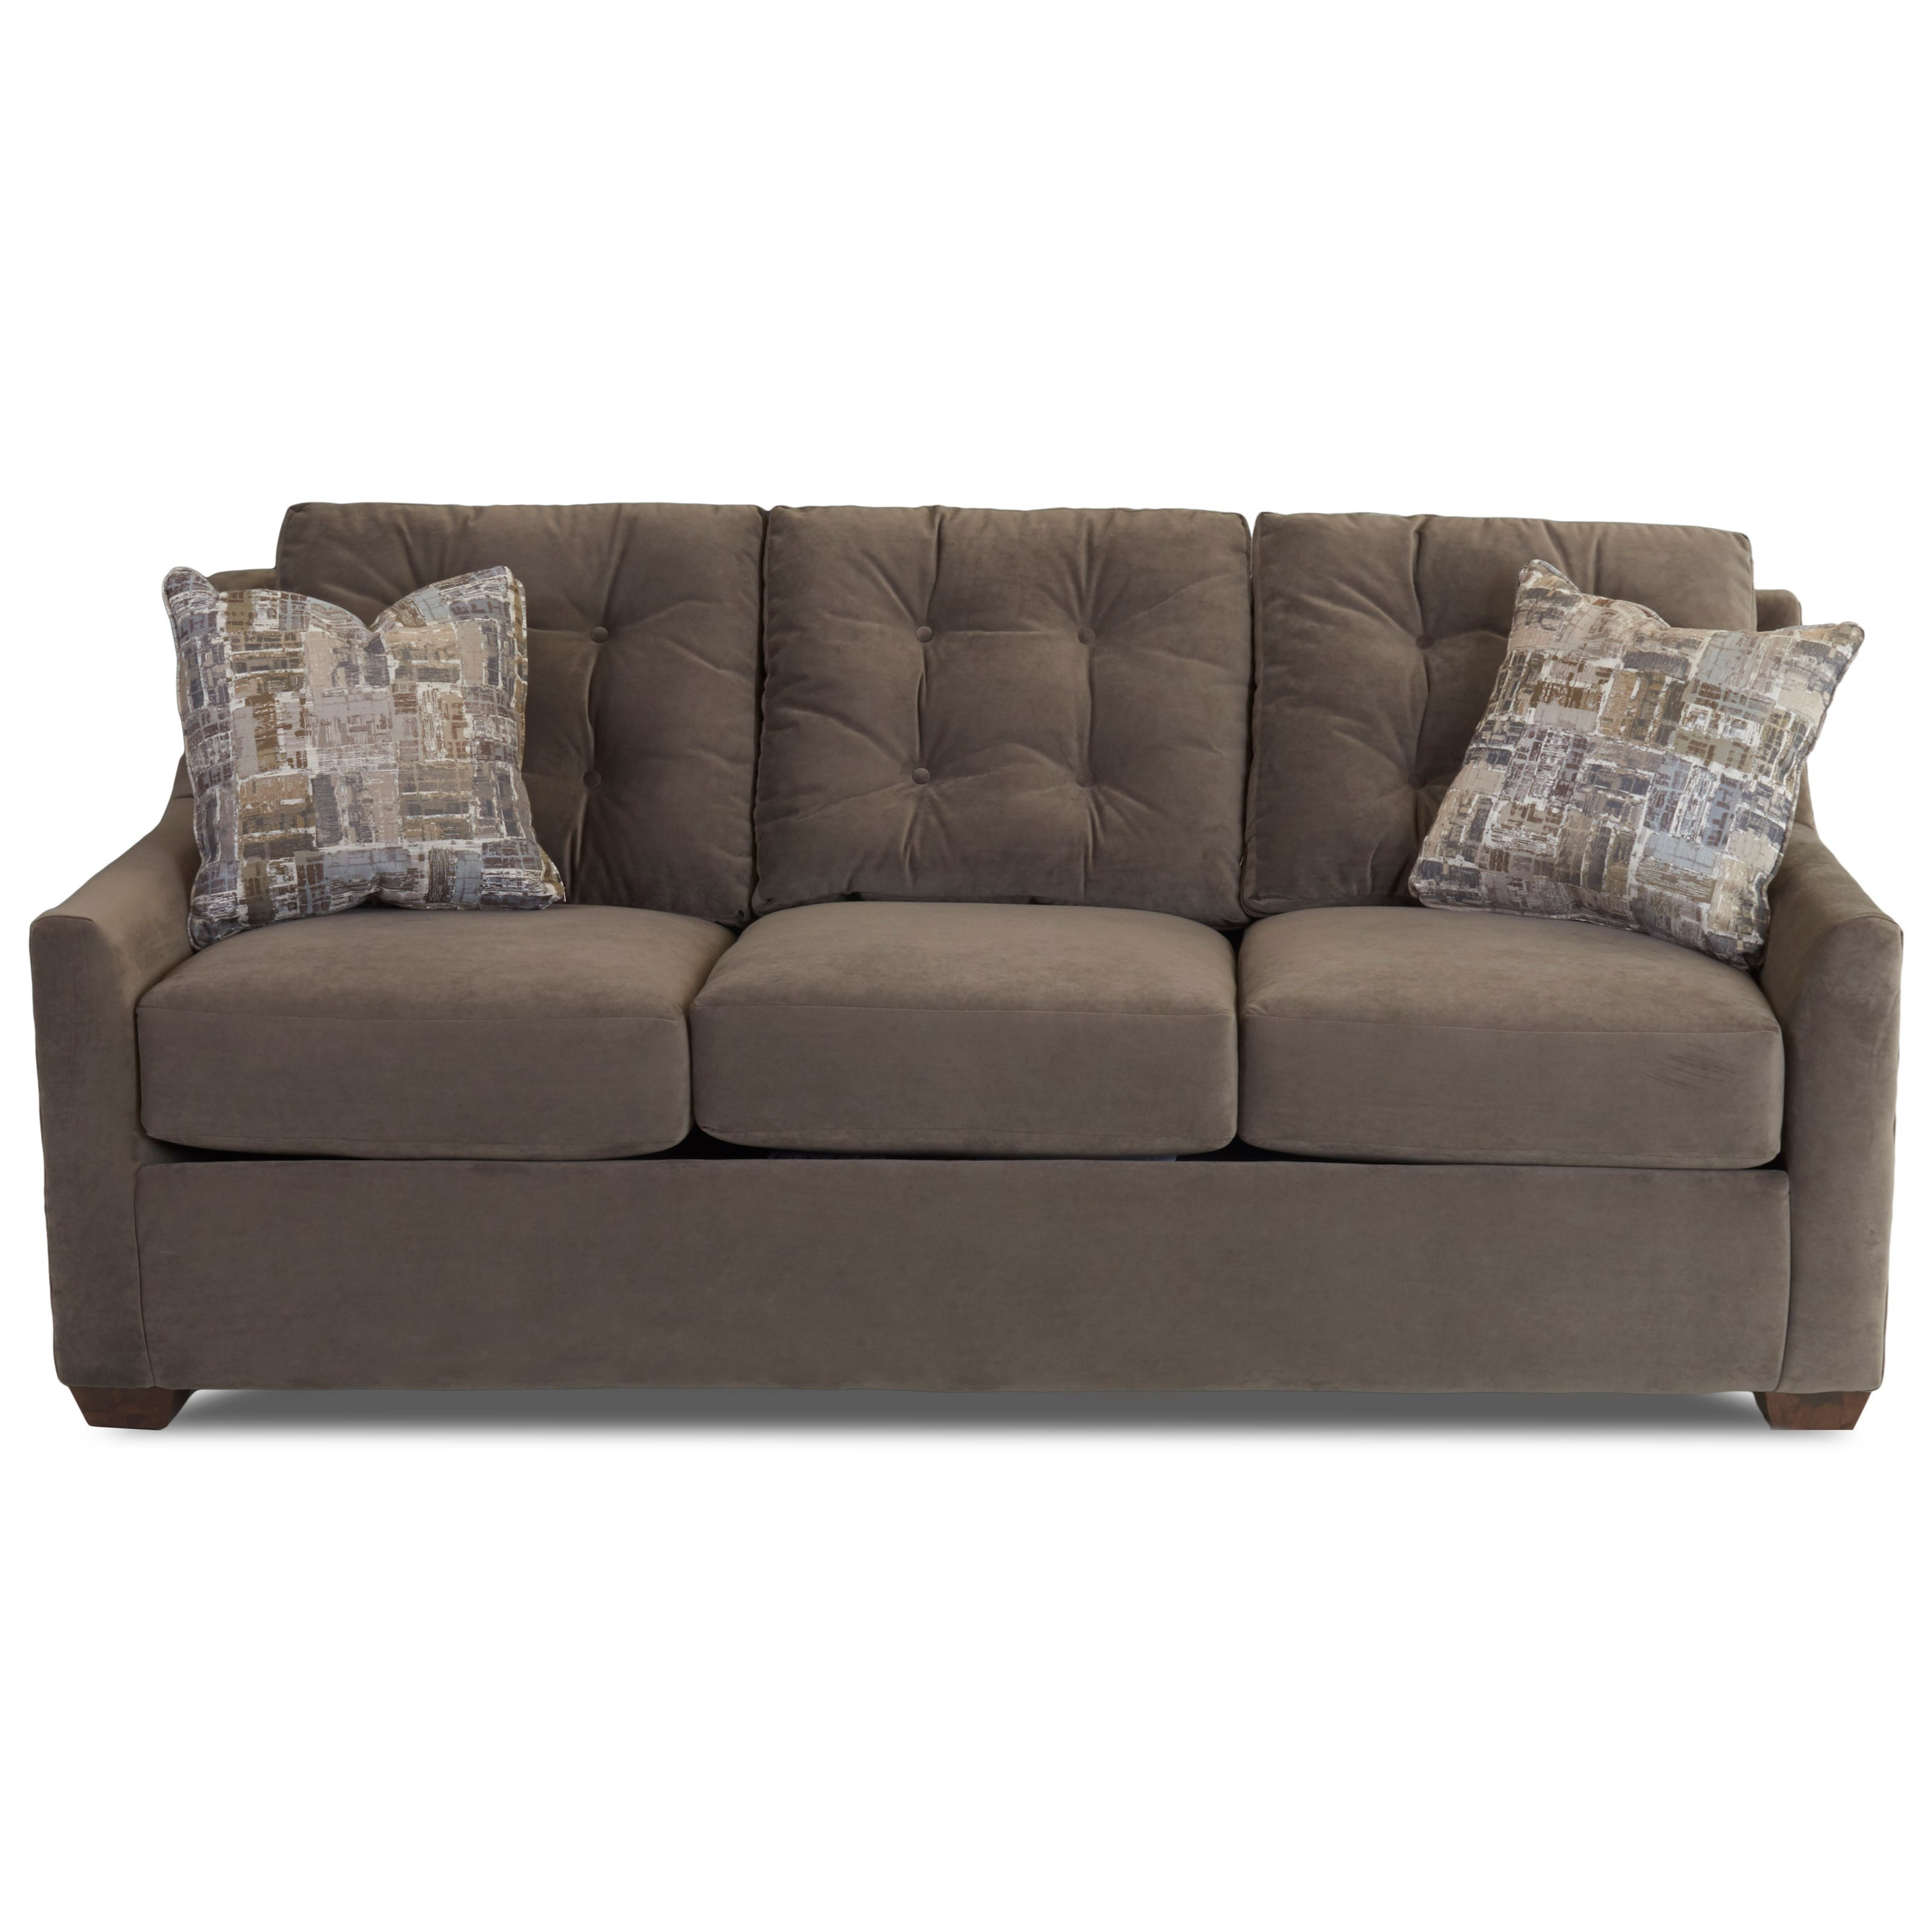 Grayton Queen Air Dream Sleeper Sofa by Klaussner at Northeast Factory Direct